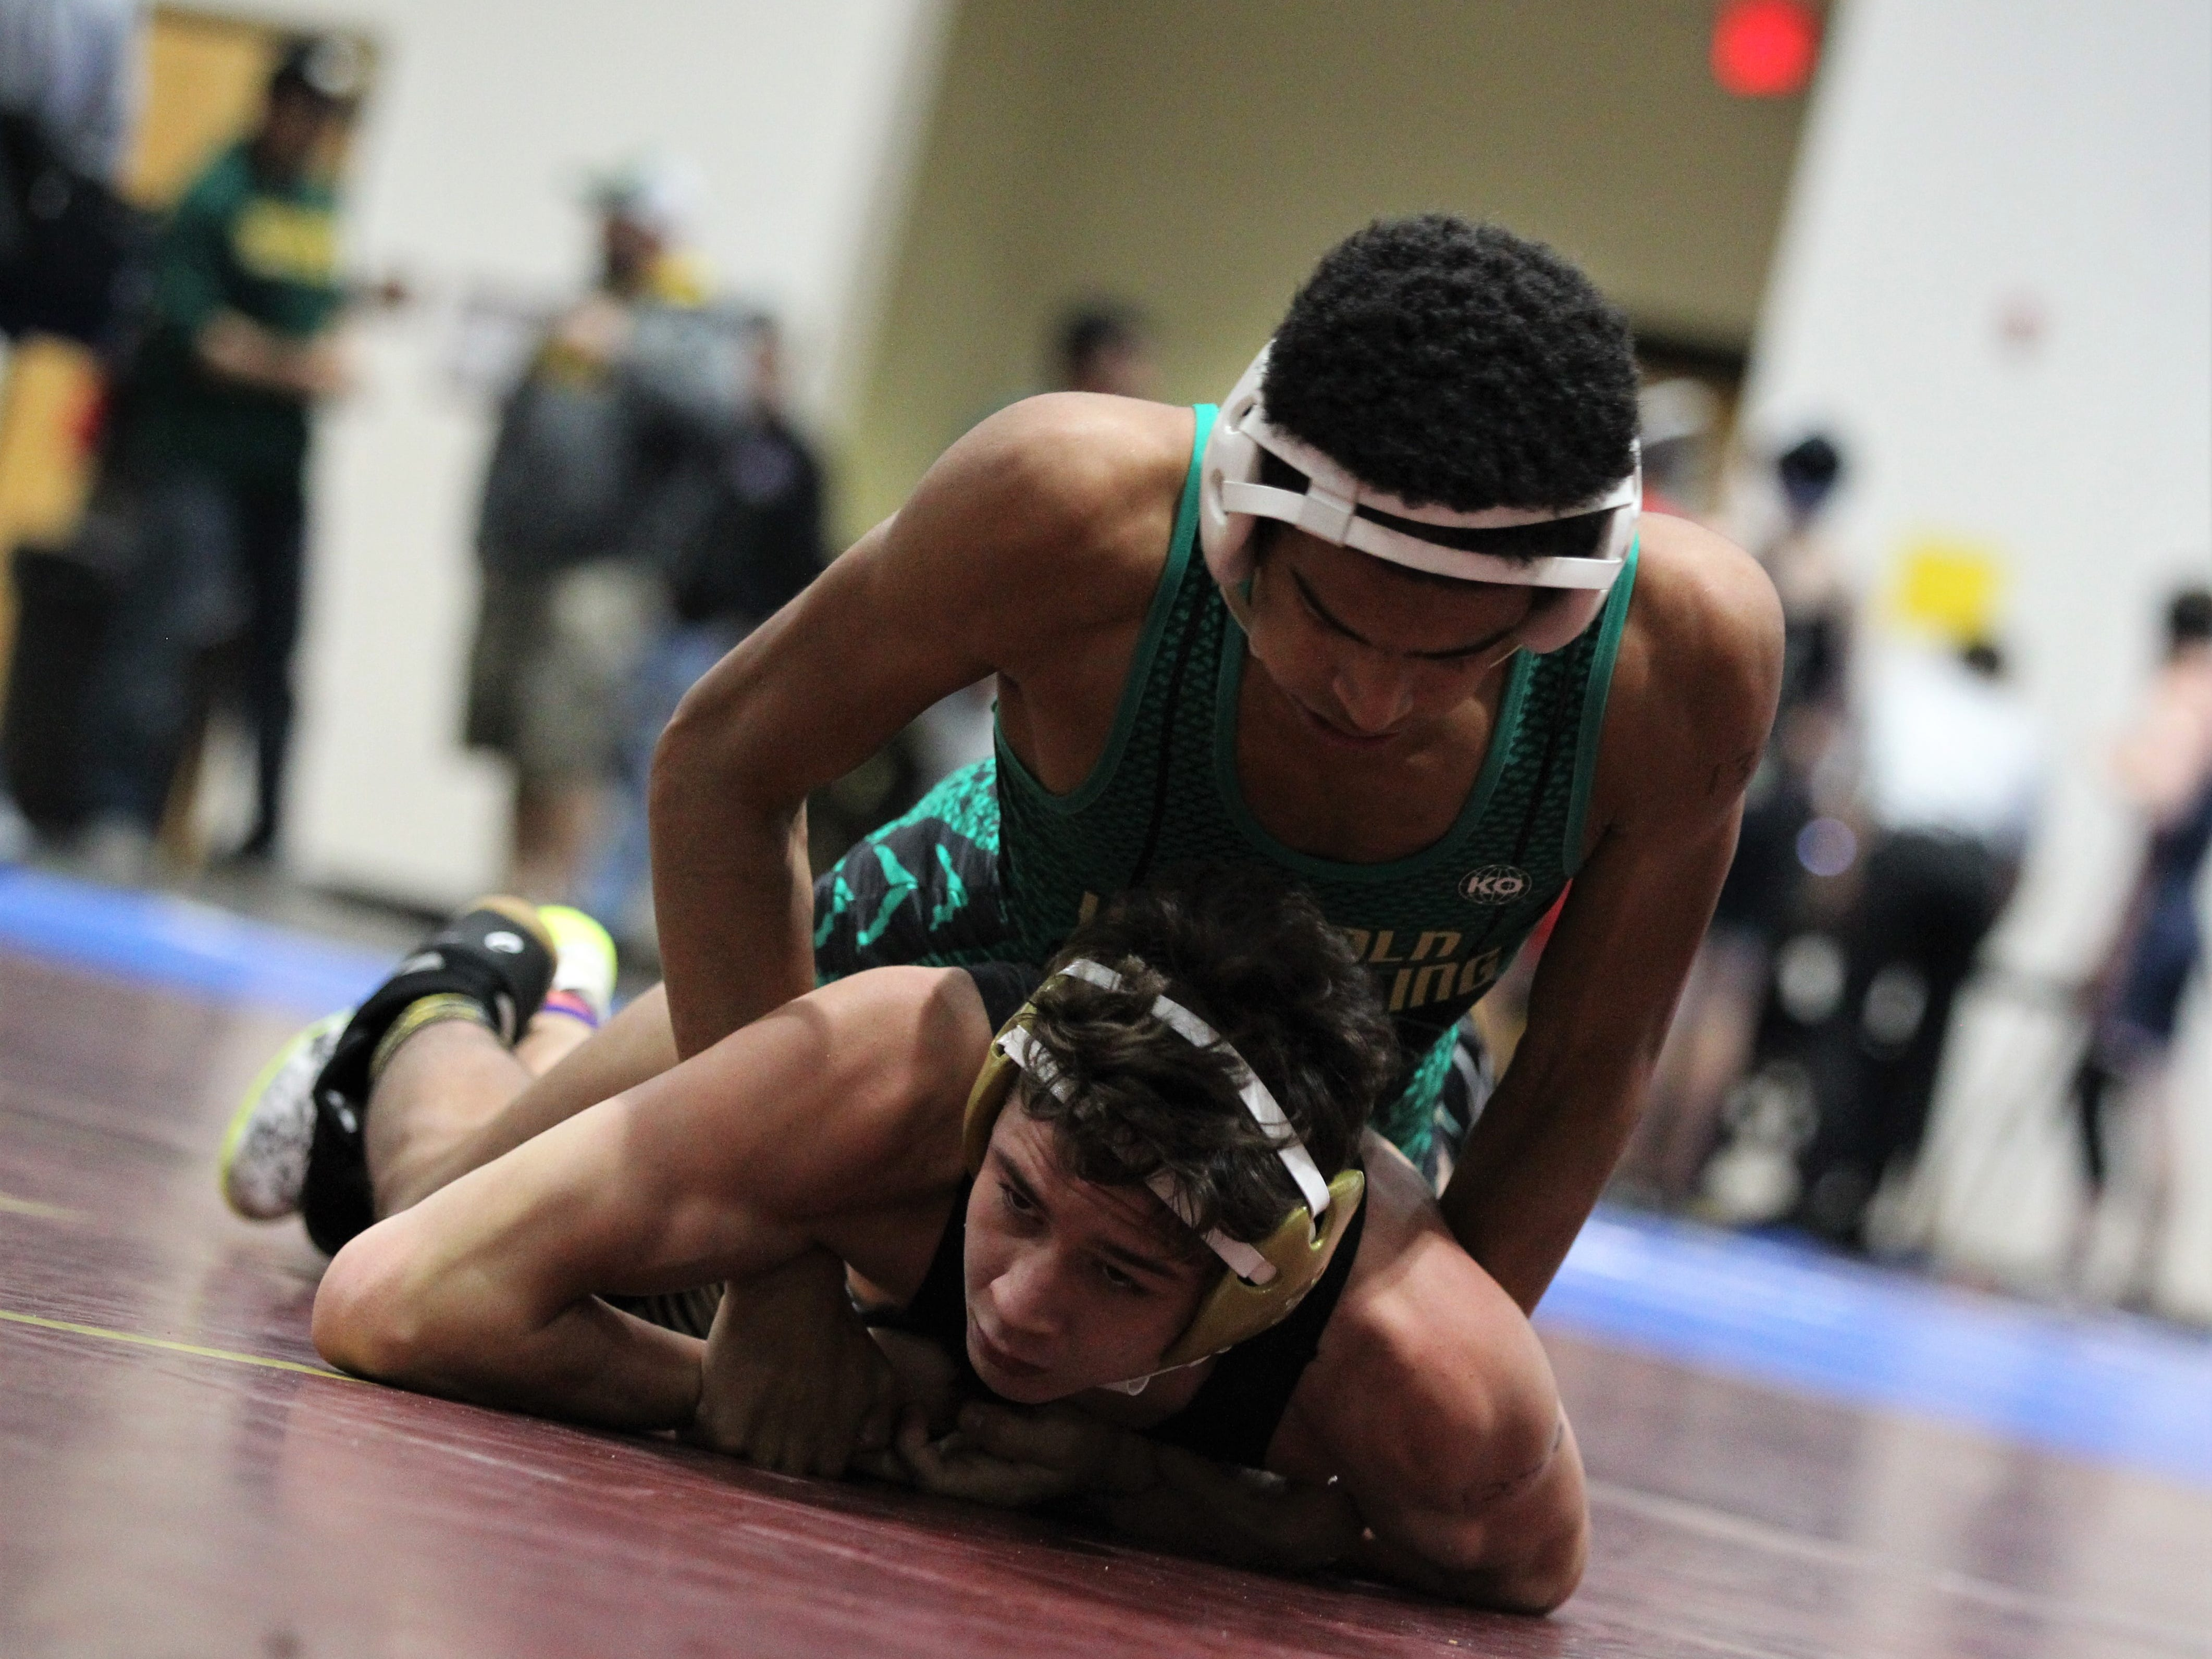 Lincoln's Jace White wrestles at the Cam Brown Seminole Classic wrestling tournament at Florida High on Dec. 7-8, 2018.